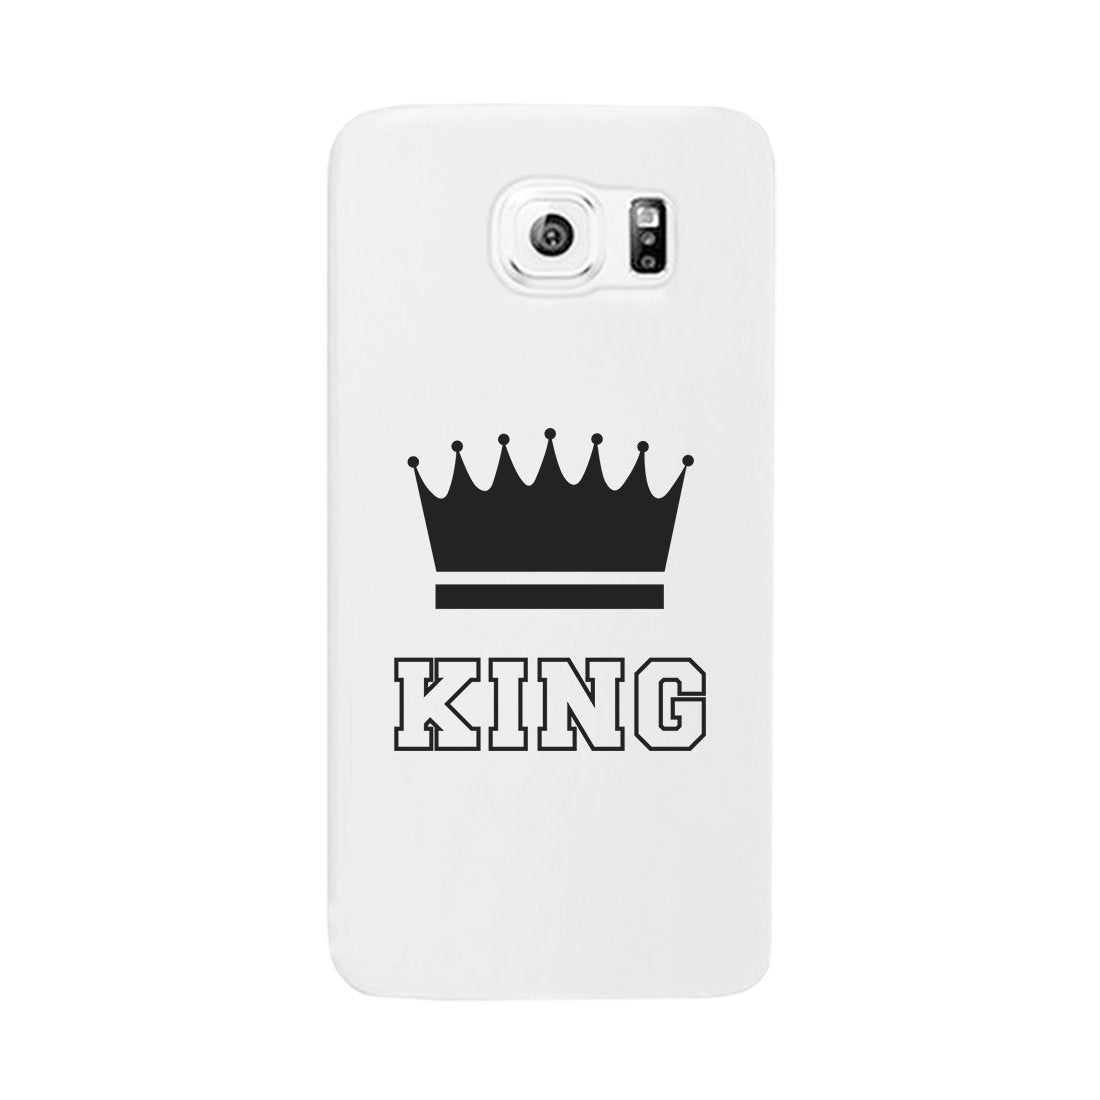 King-LEFT Phone Case Slim Fit Cute Couples Anniversary Gift For Him